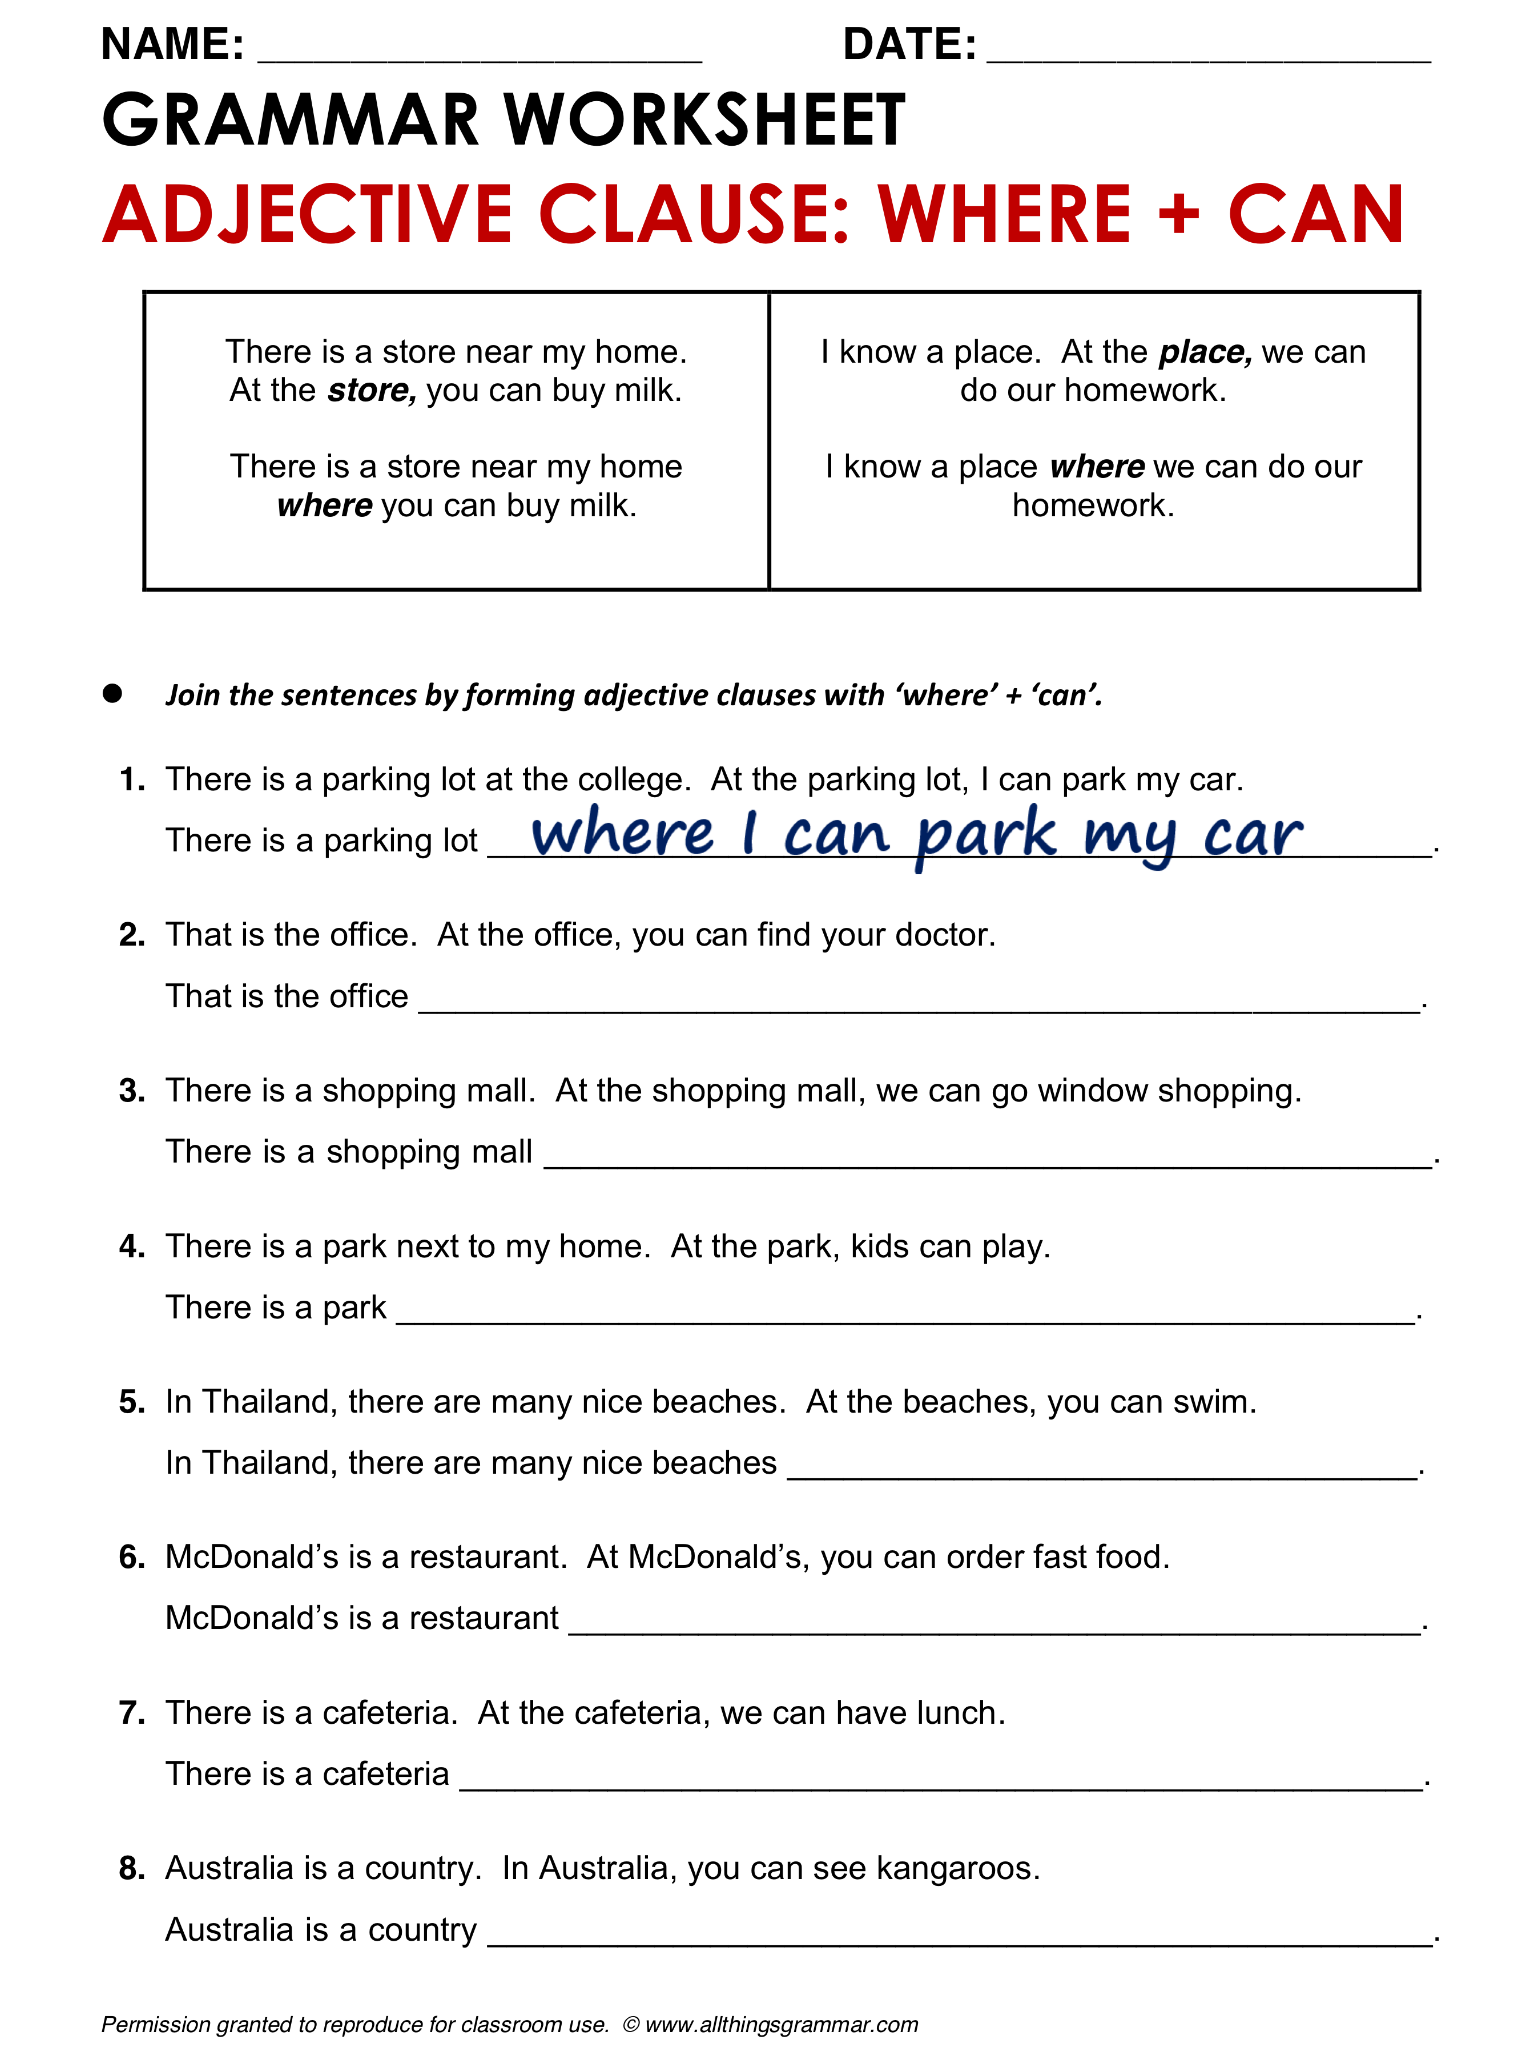 Worksheets Adjective Clause Worksheet english grammar adjective clause where www allthingsgrammar com comadjective clauses